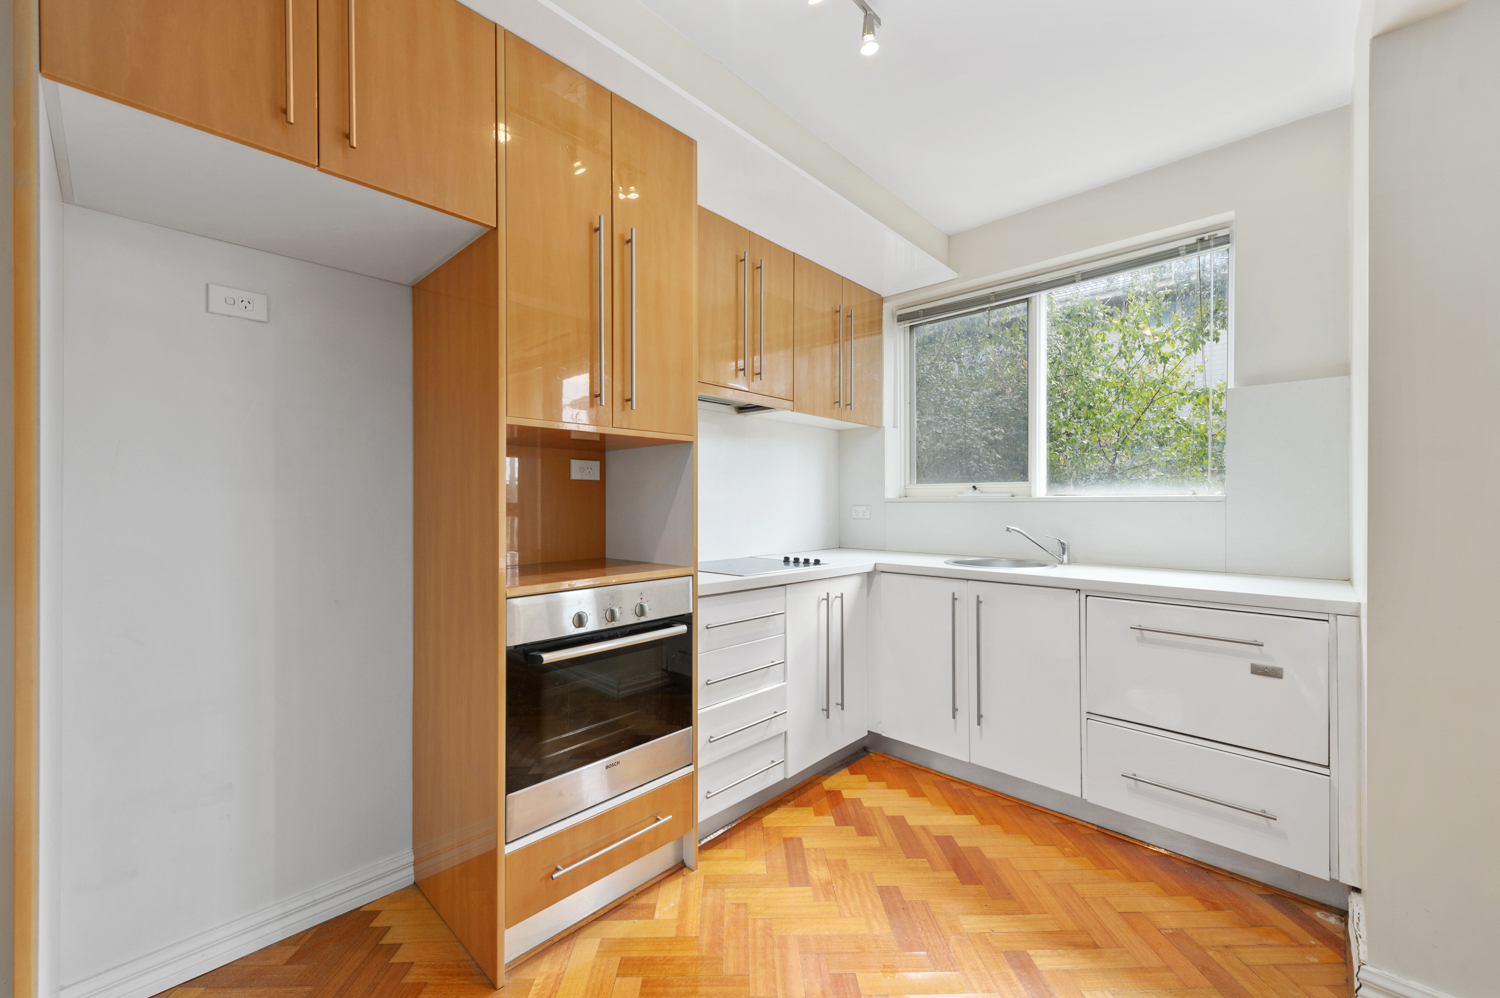 12-11-kooyong-road-armadale-student-accommodation-Melbourne-Kitchen-Unilodgers